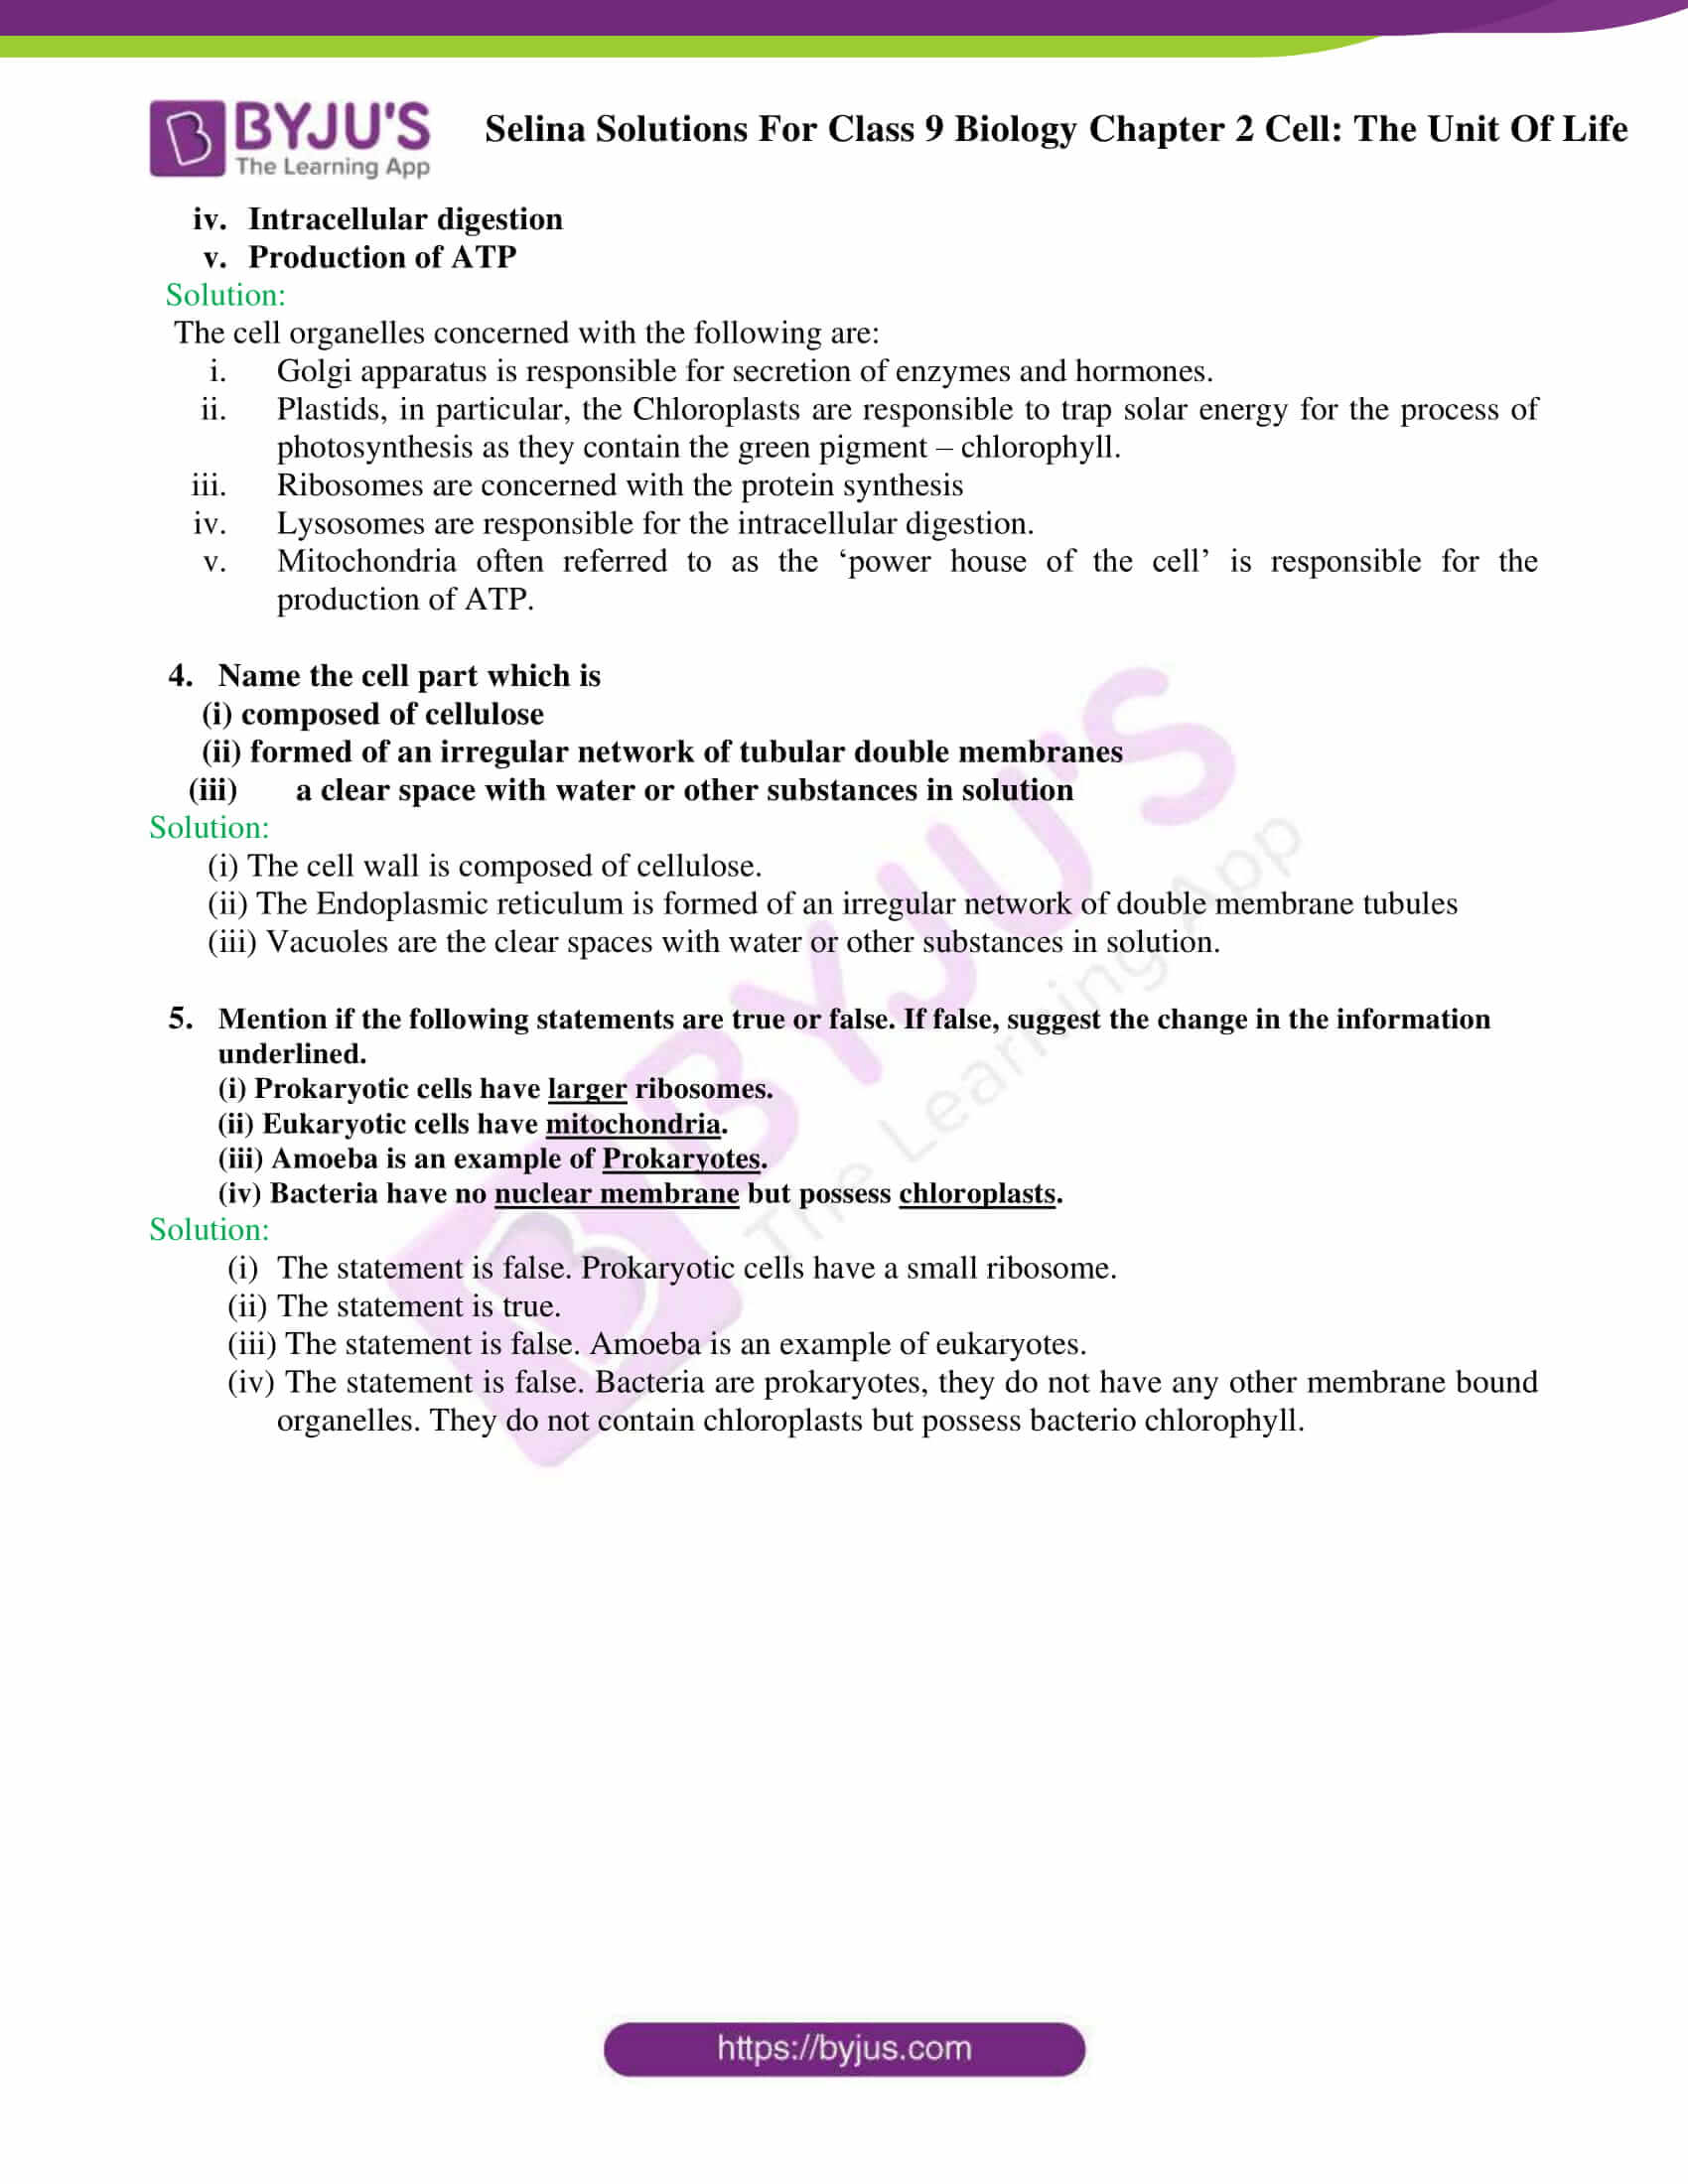 Selina Solutions For Class 9 Biology Chapter 2 Cell The Unit Of Life part 04